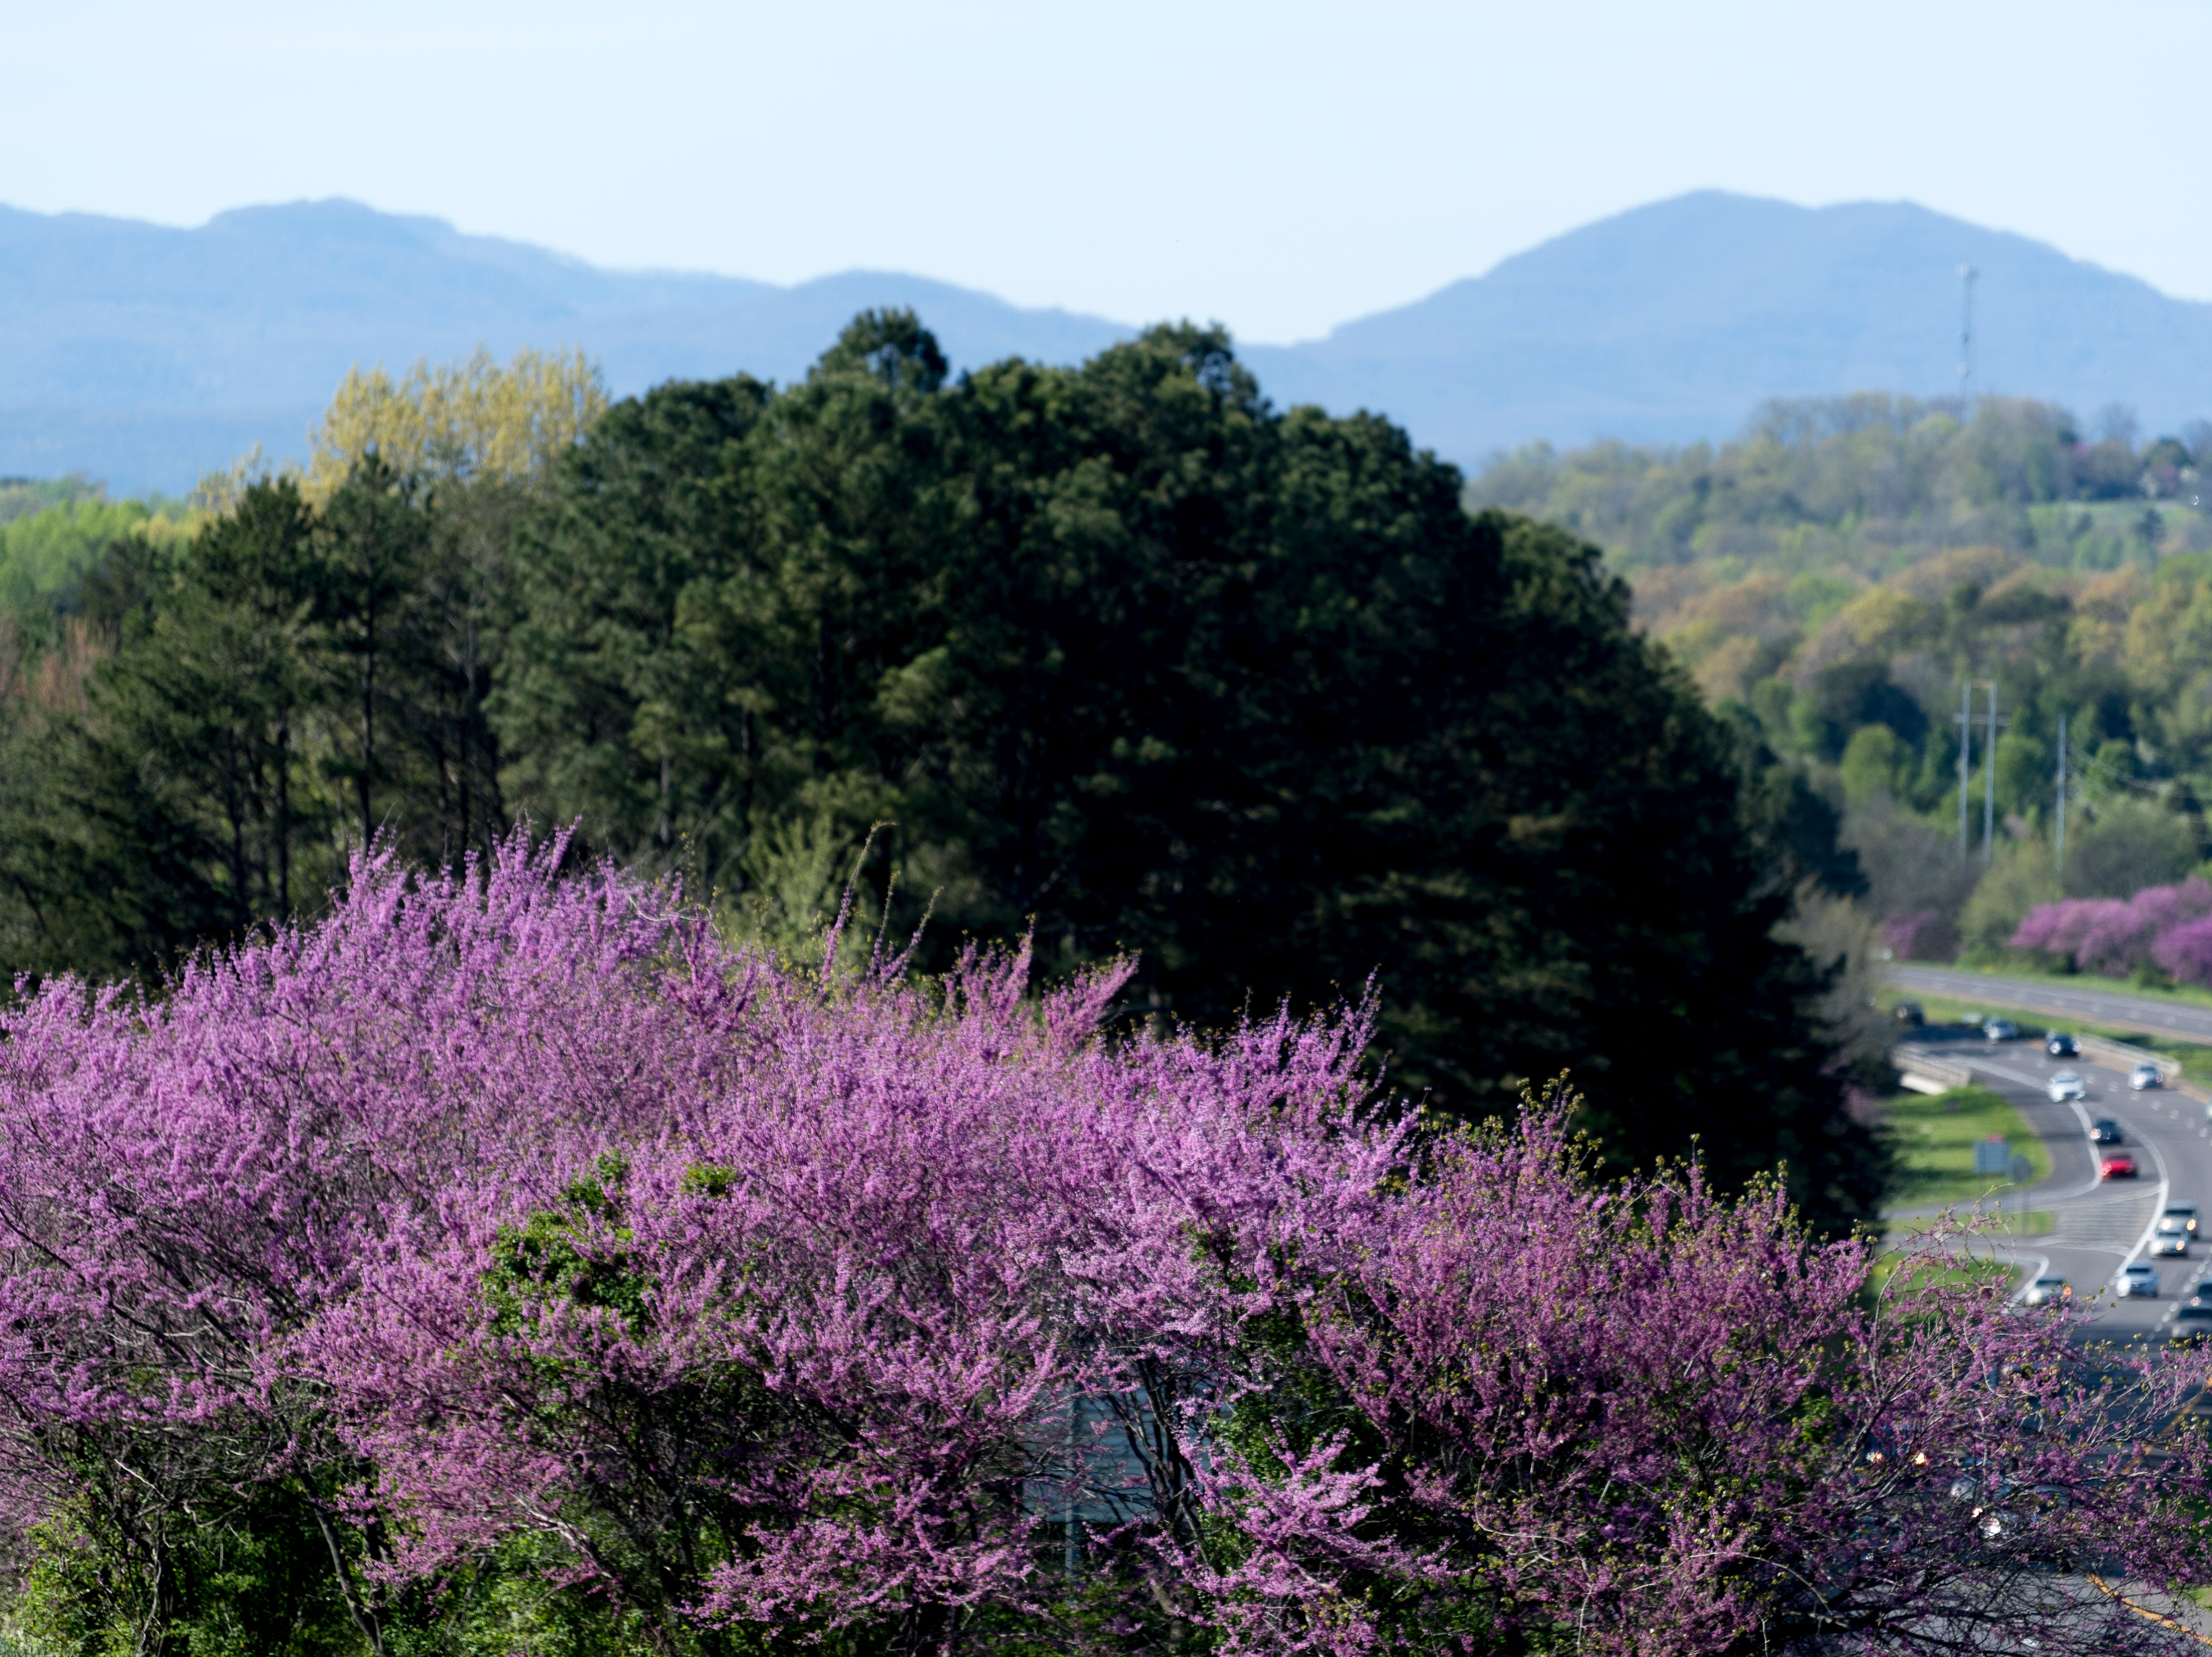 Redbuds bloom along Pellissippi Parkway in Knoxville on Wednesday, April 10, 2019.